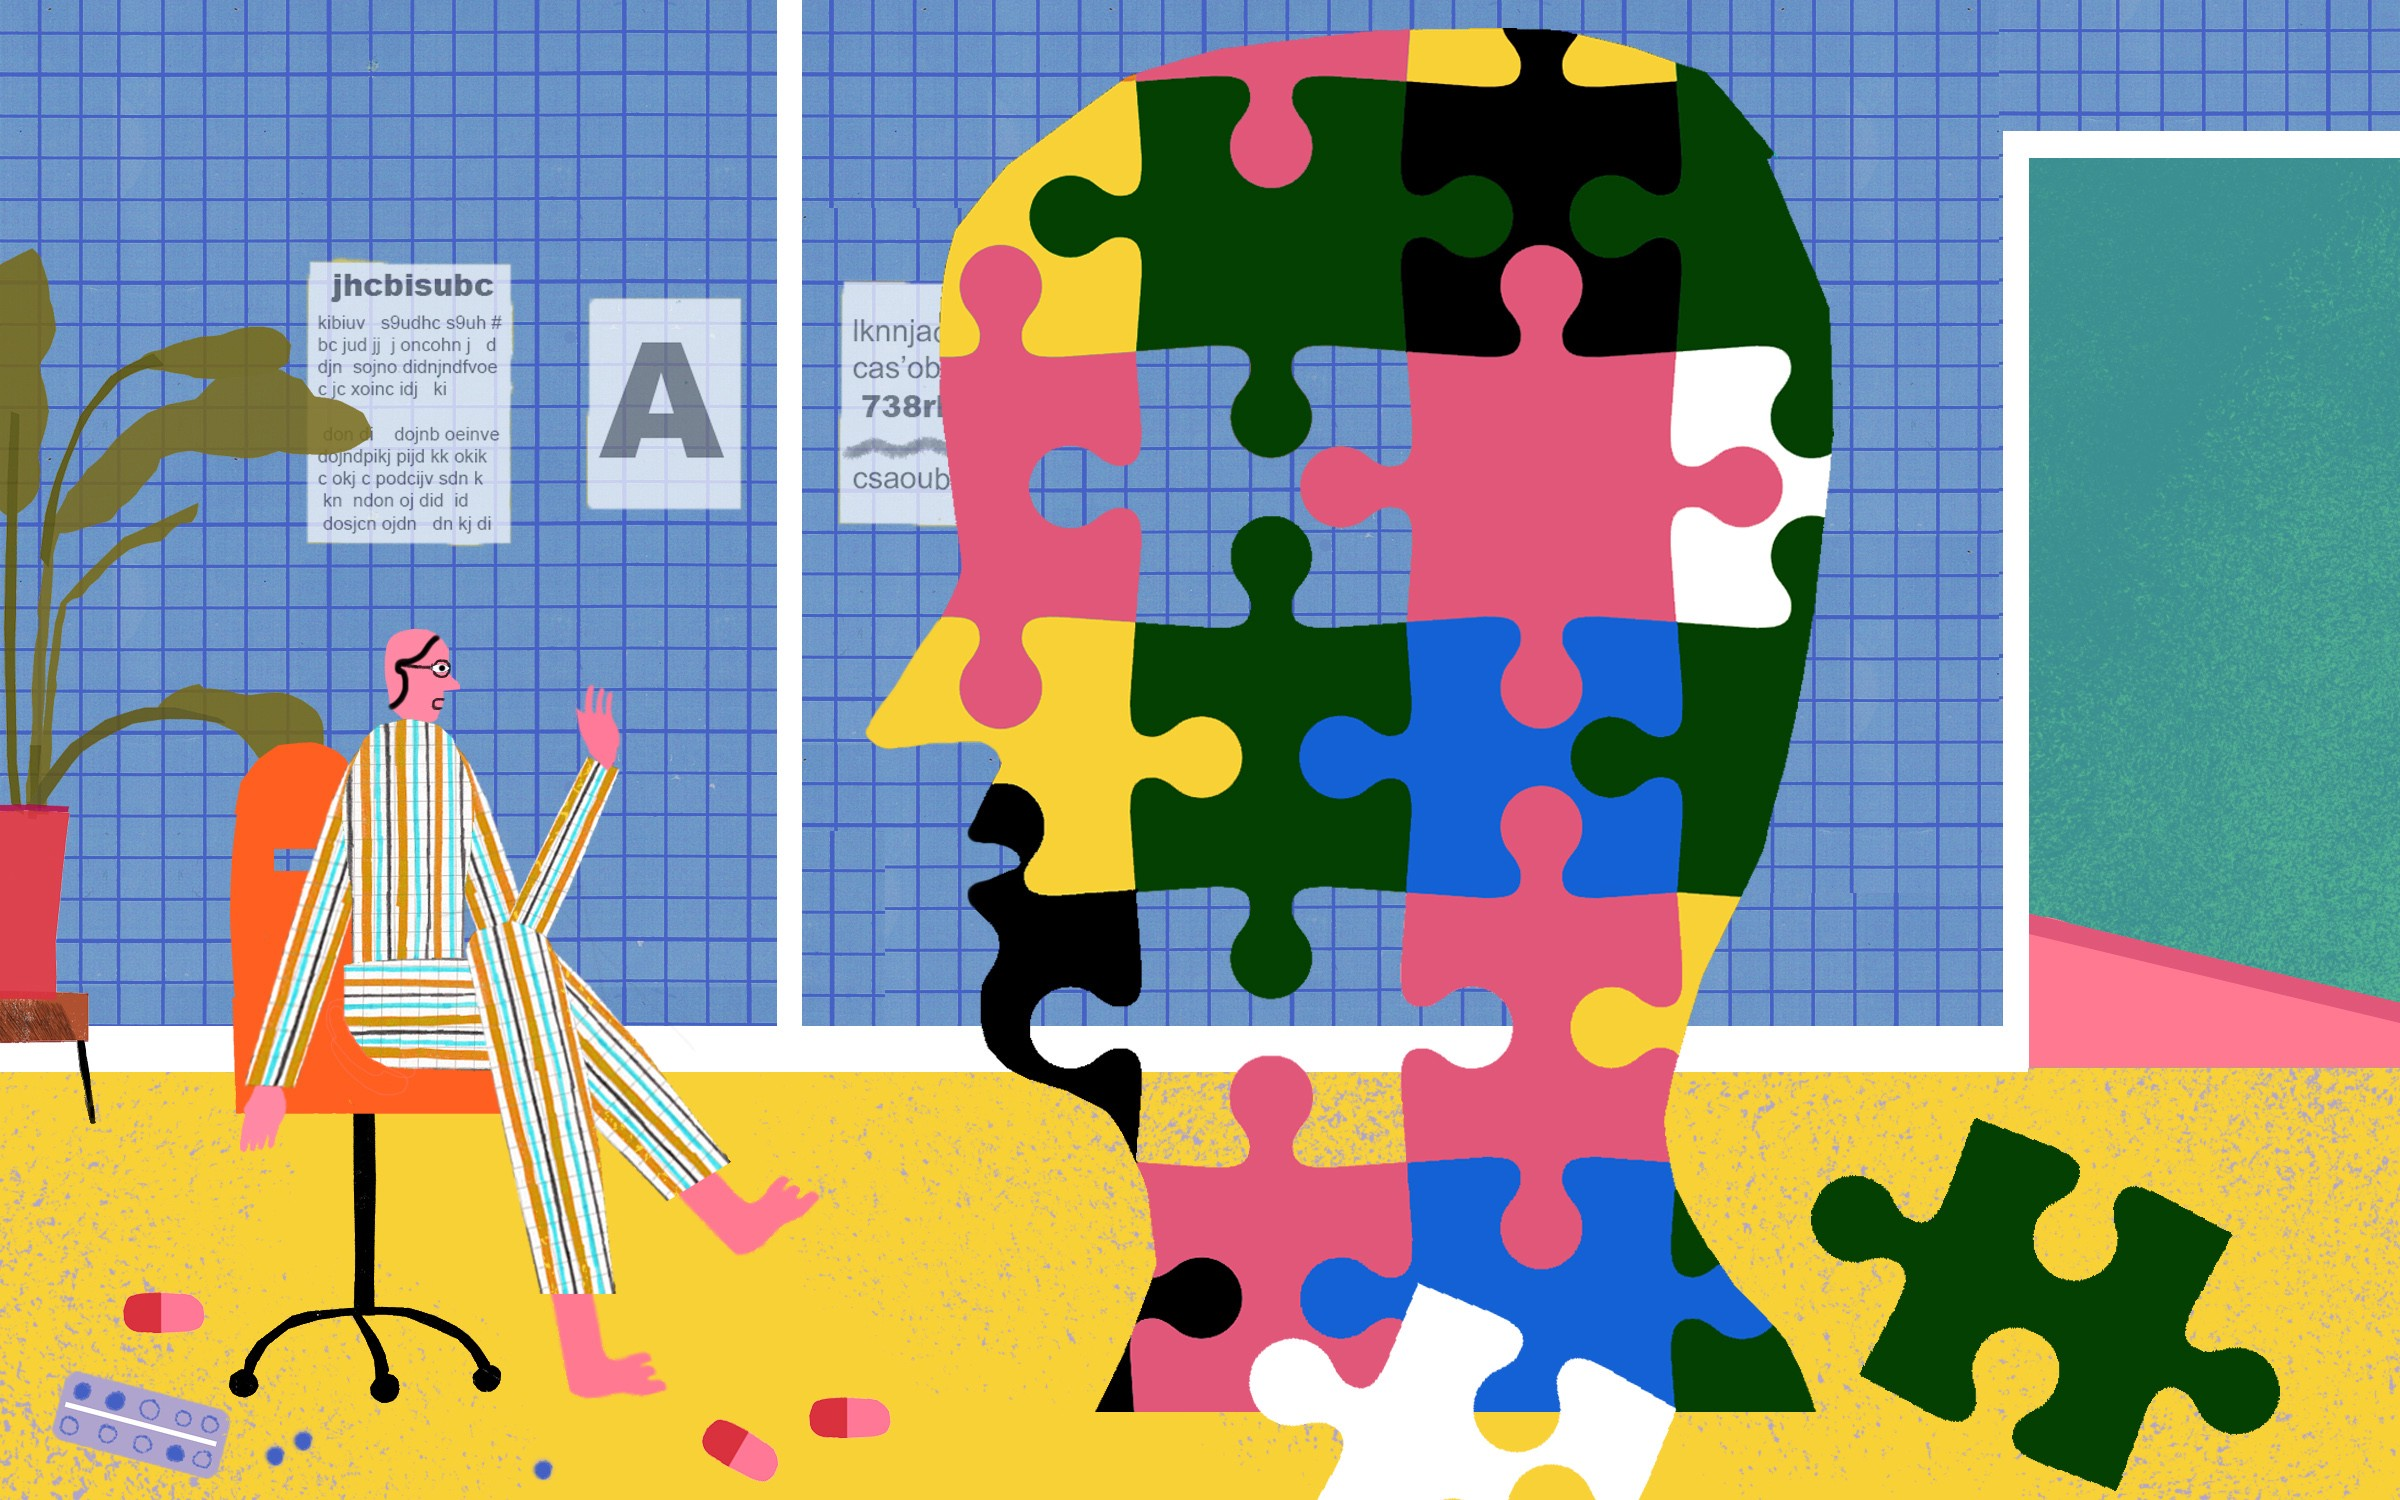 Illustration of a therapist in a chair with a colorful large head made of puzzle pieces